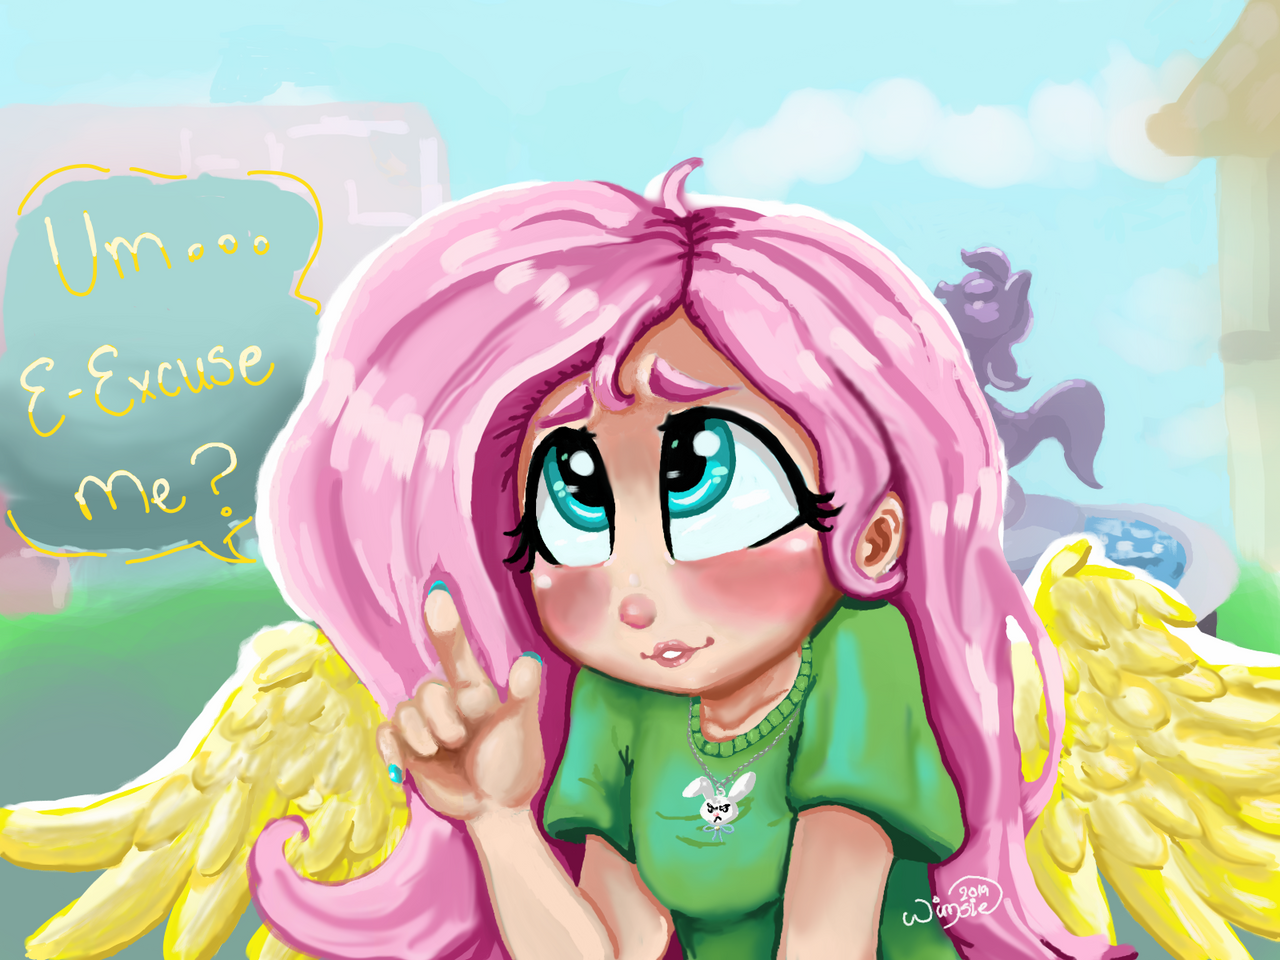 flutters_has_a_question_by_wimsie_dd36ts